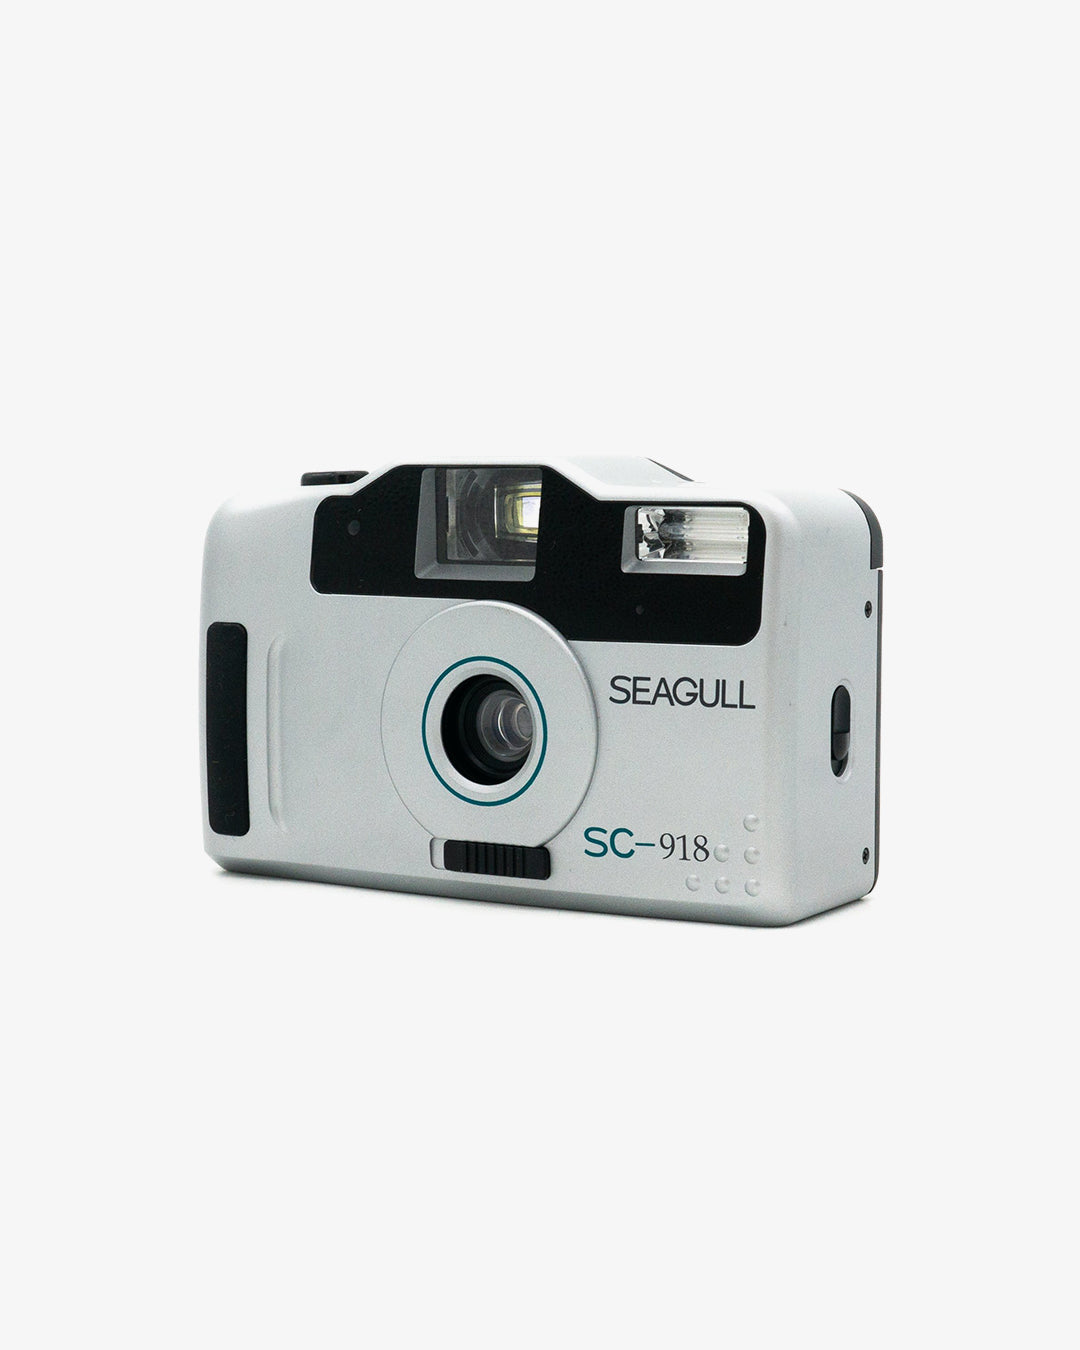 Seagull SC-918 Point & Shoot Camera with 30mm Lens